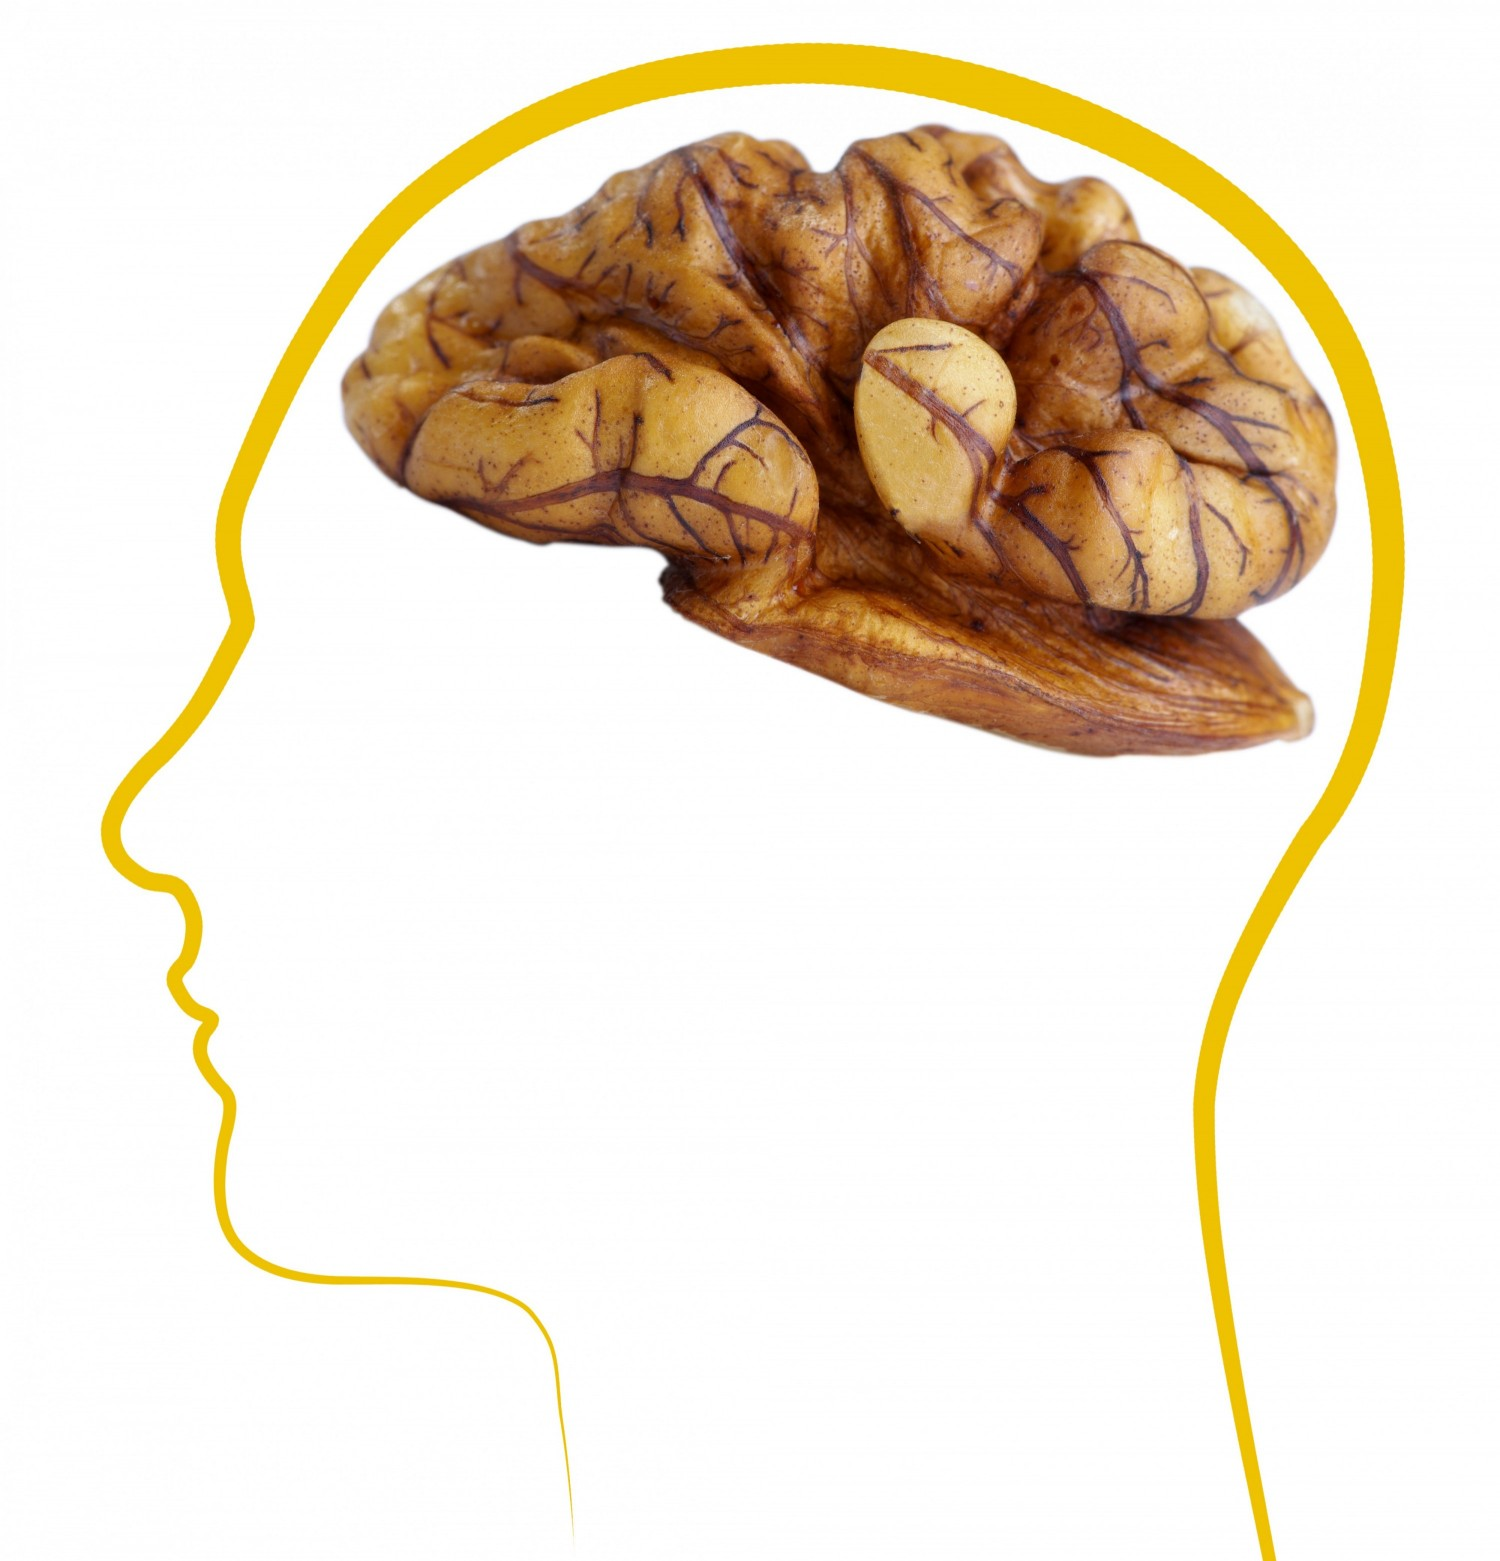 5 Foods to Fight Brain Fog